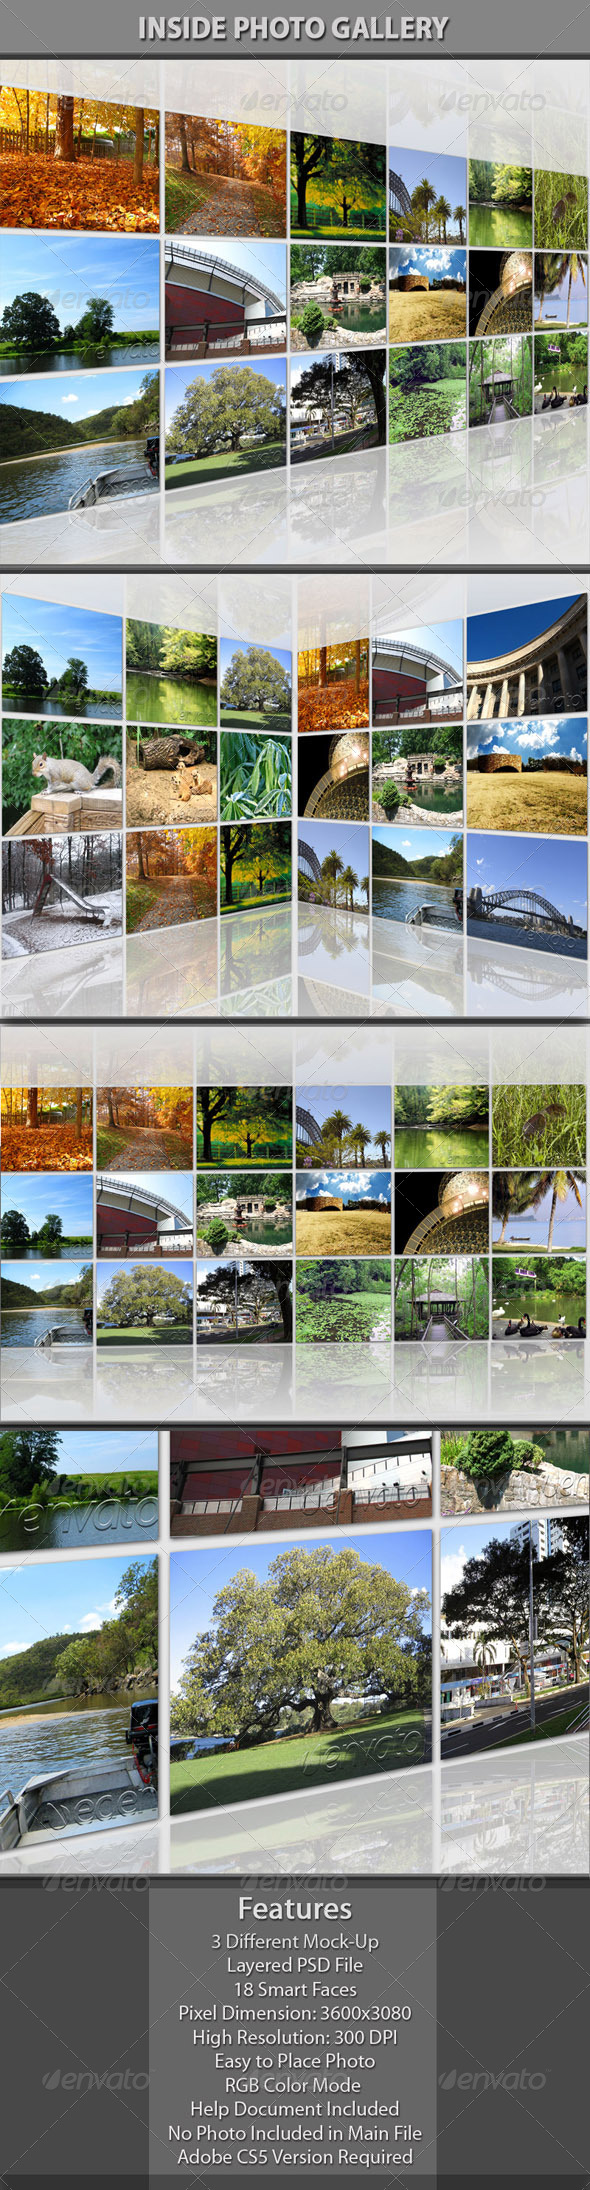 Inside Photo Gallery - Photo Templates Graphics